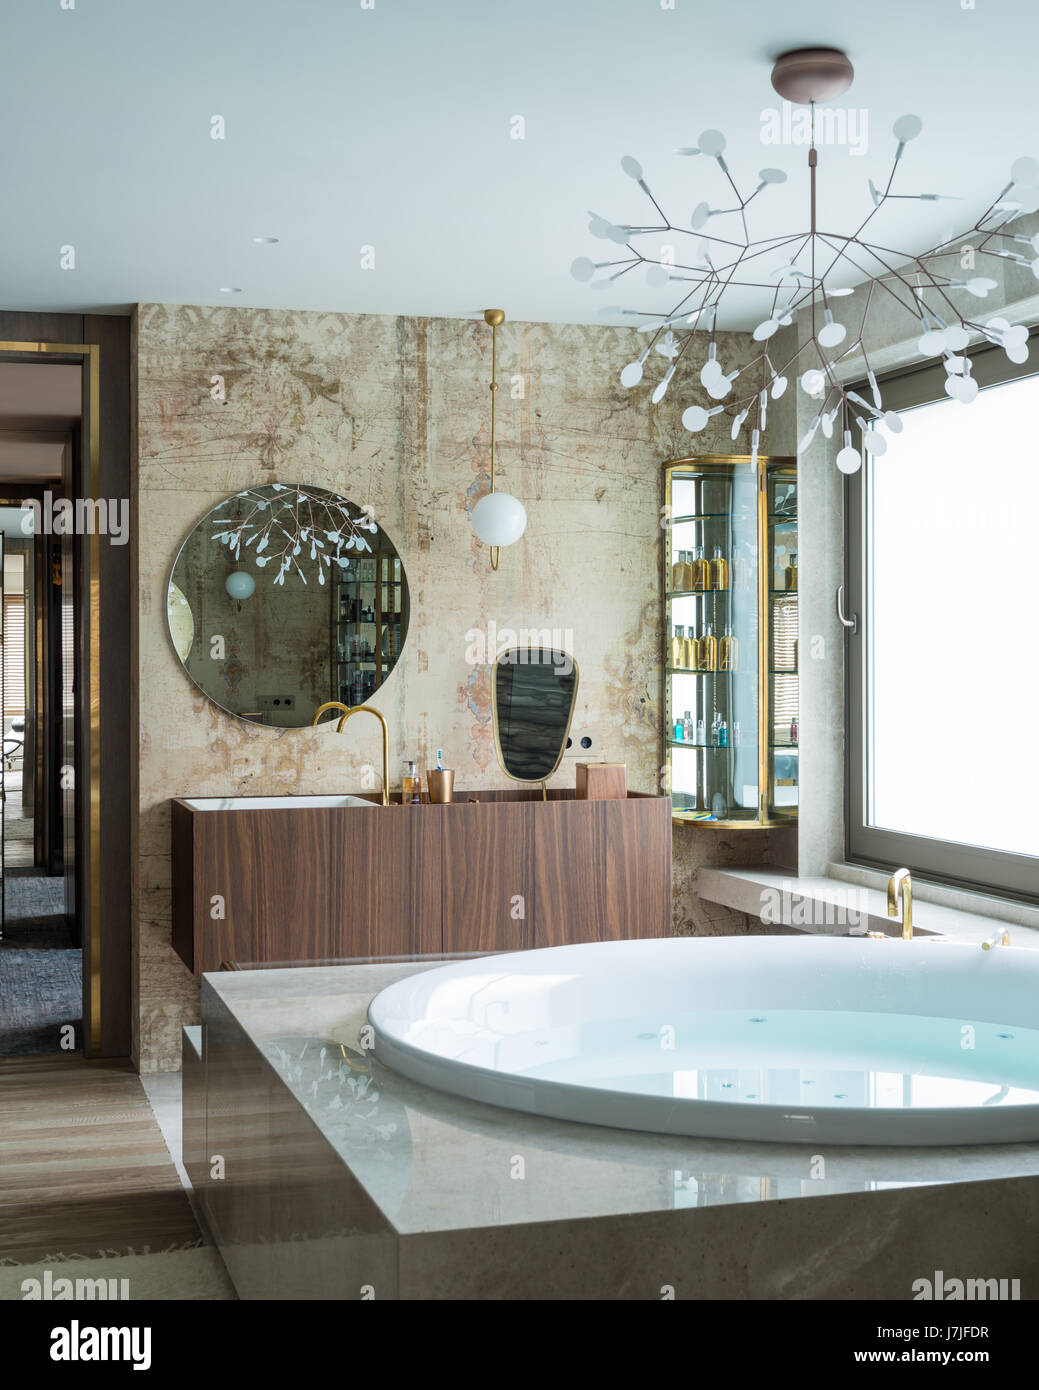 Sculptural light fitting above hot tub with frosted glass window - Stock Image